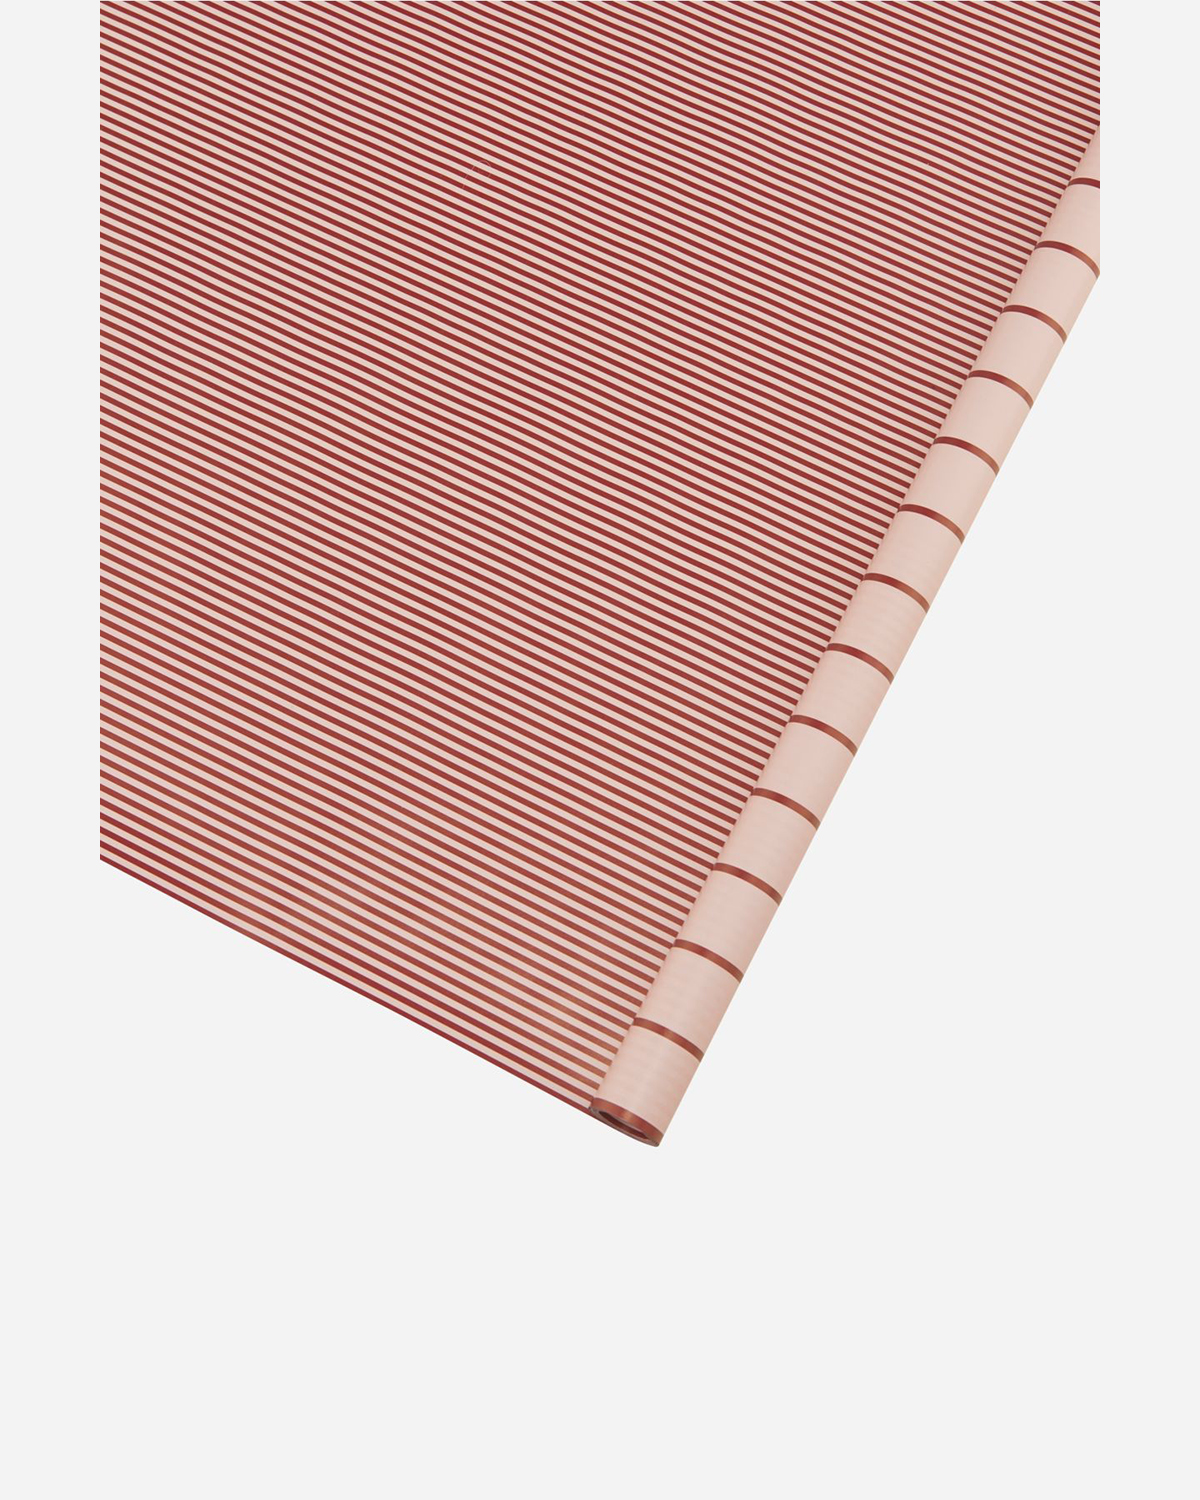 Gift wrapping paper, Stripes, Red/Pink, 90 gsm.